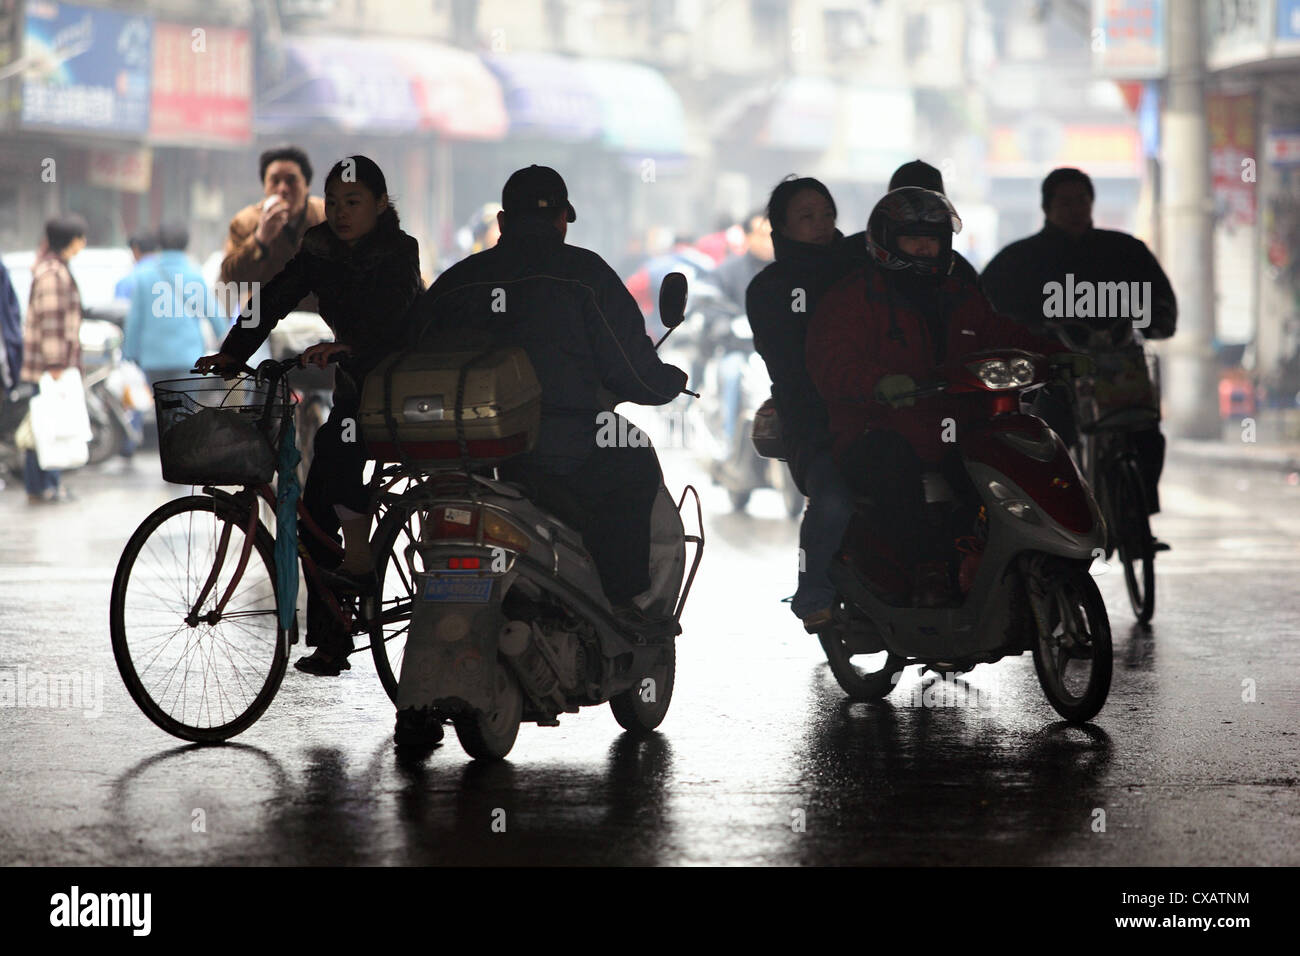 Shanghai, silhouette of bicycle and motorcycle riders Stock Photo